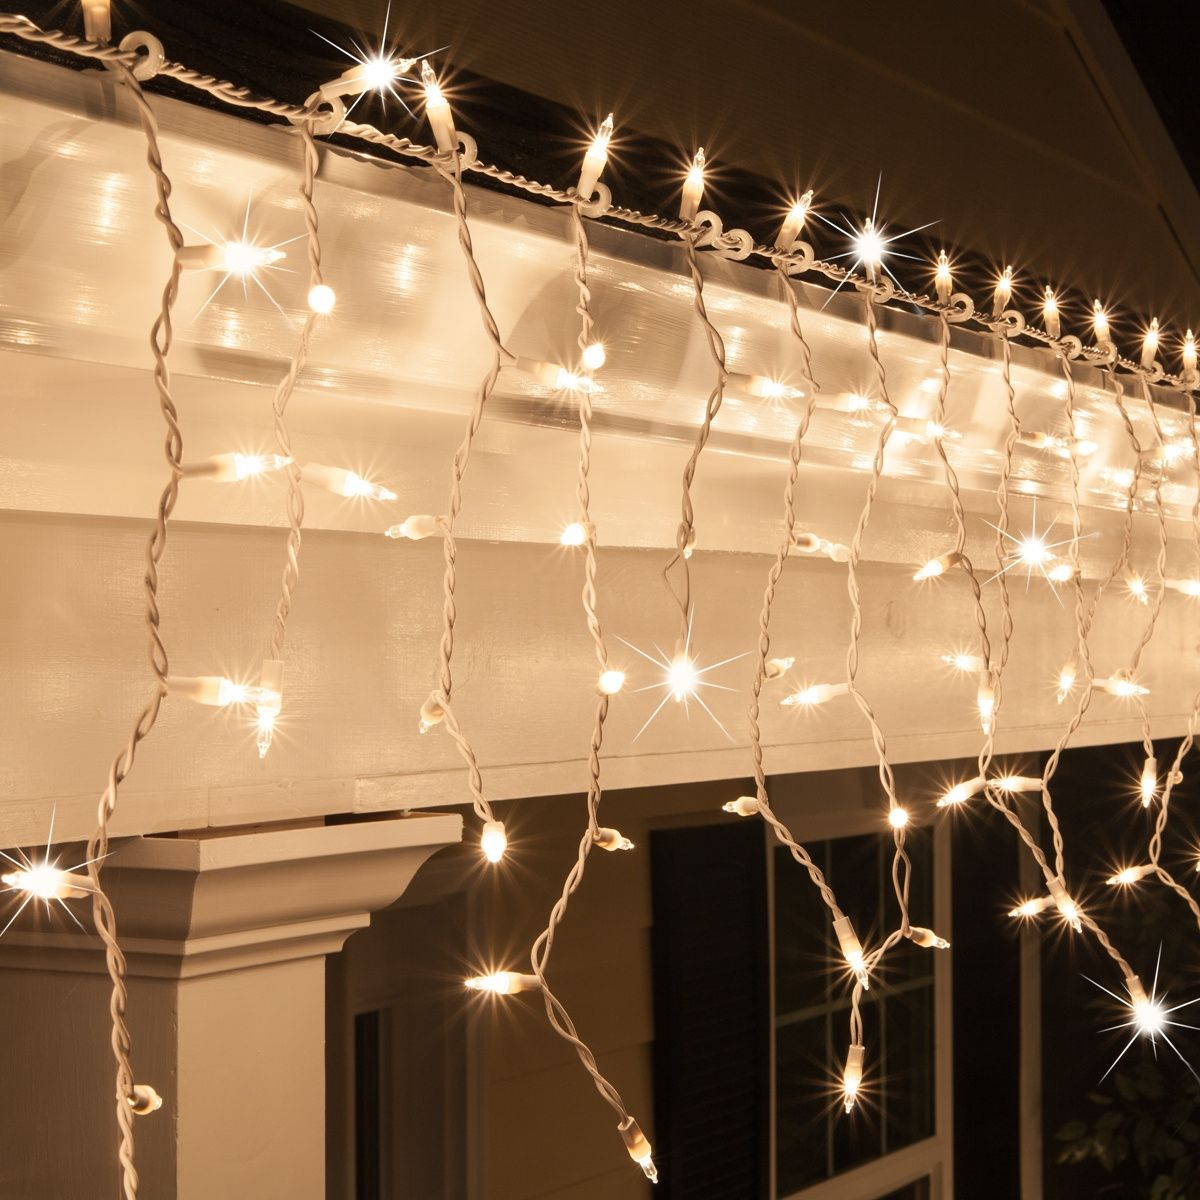 low voltage interior lighting kits%0A Twinkling Outdoor Icicle Lights